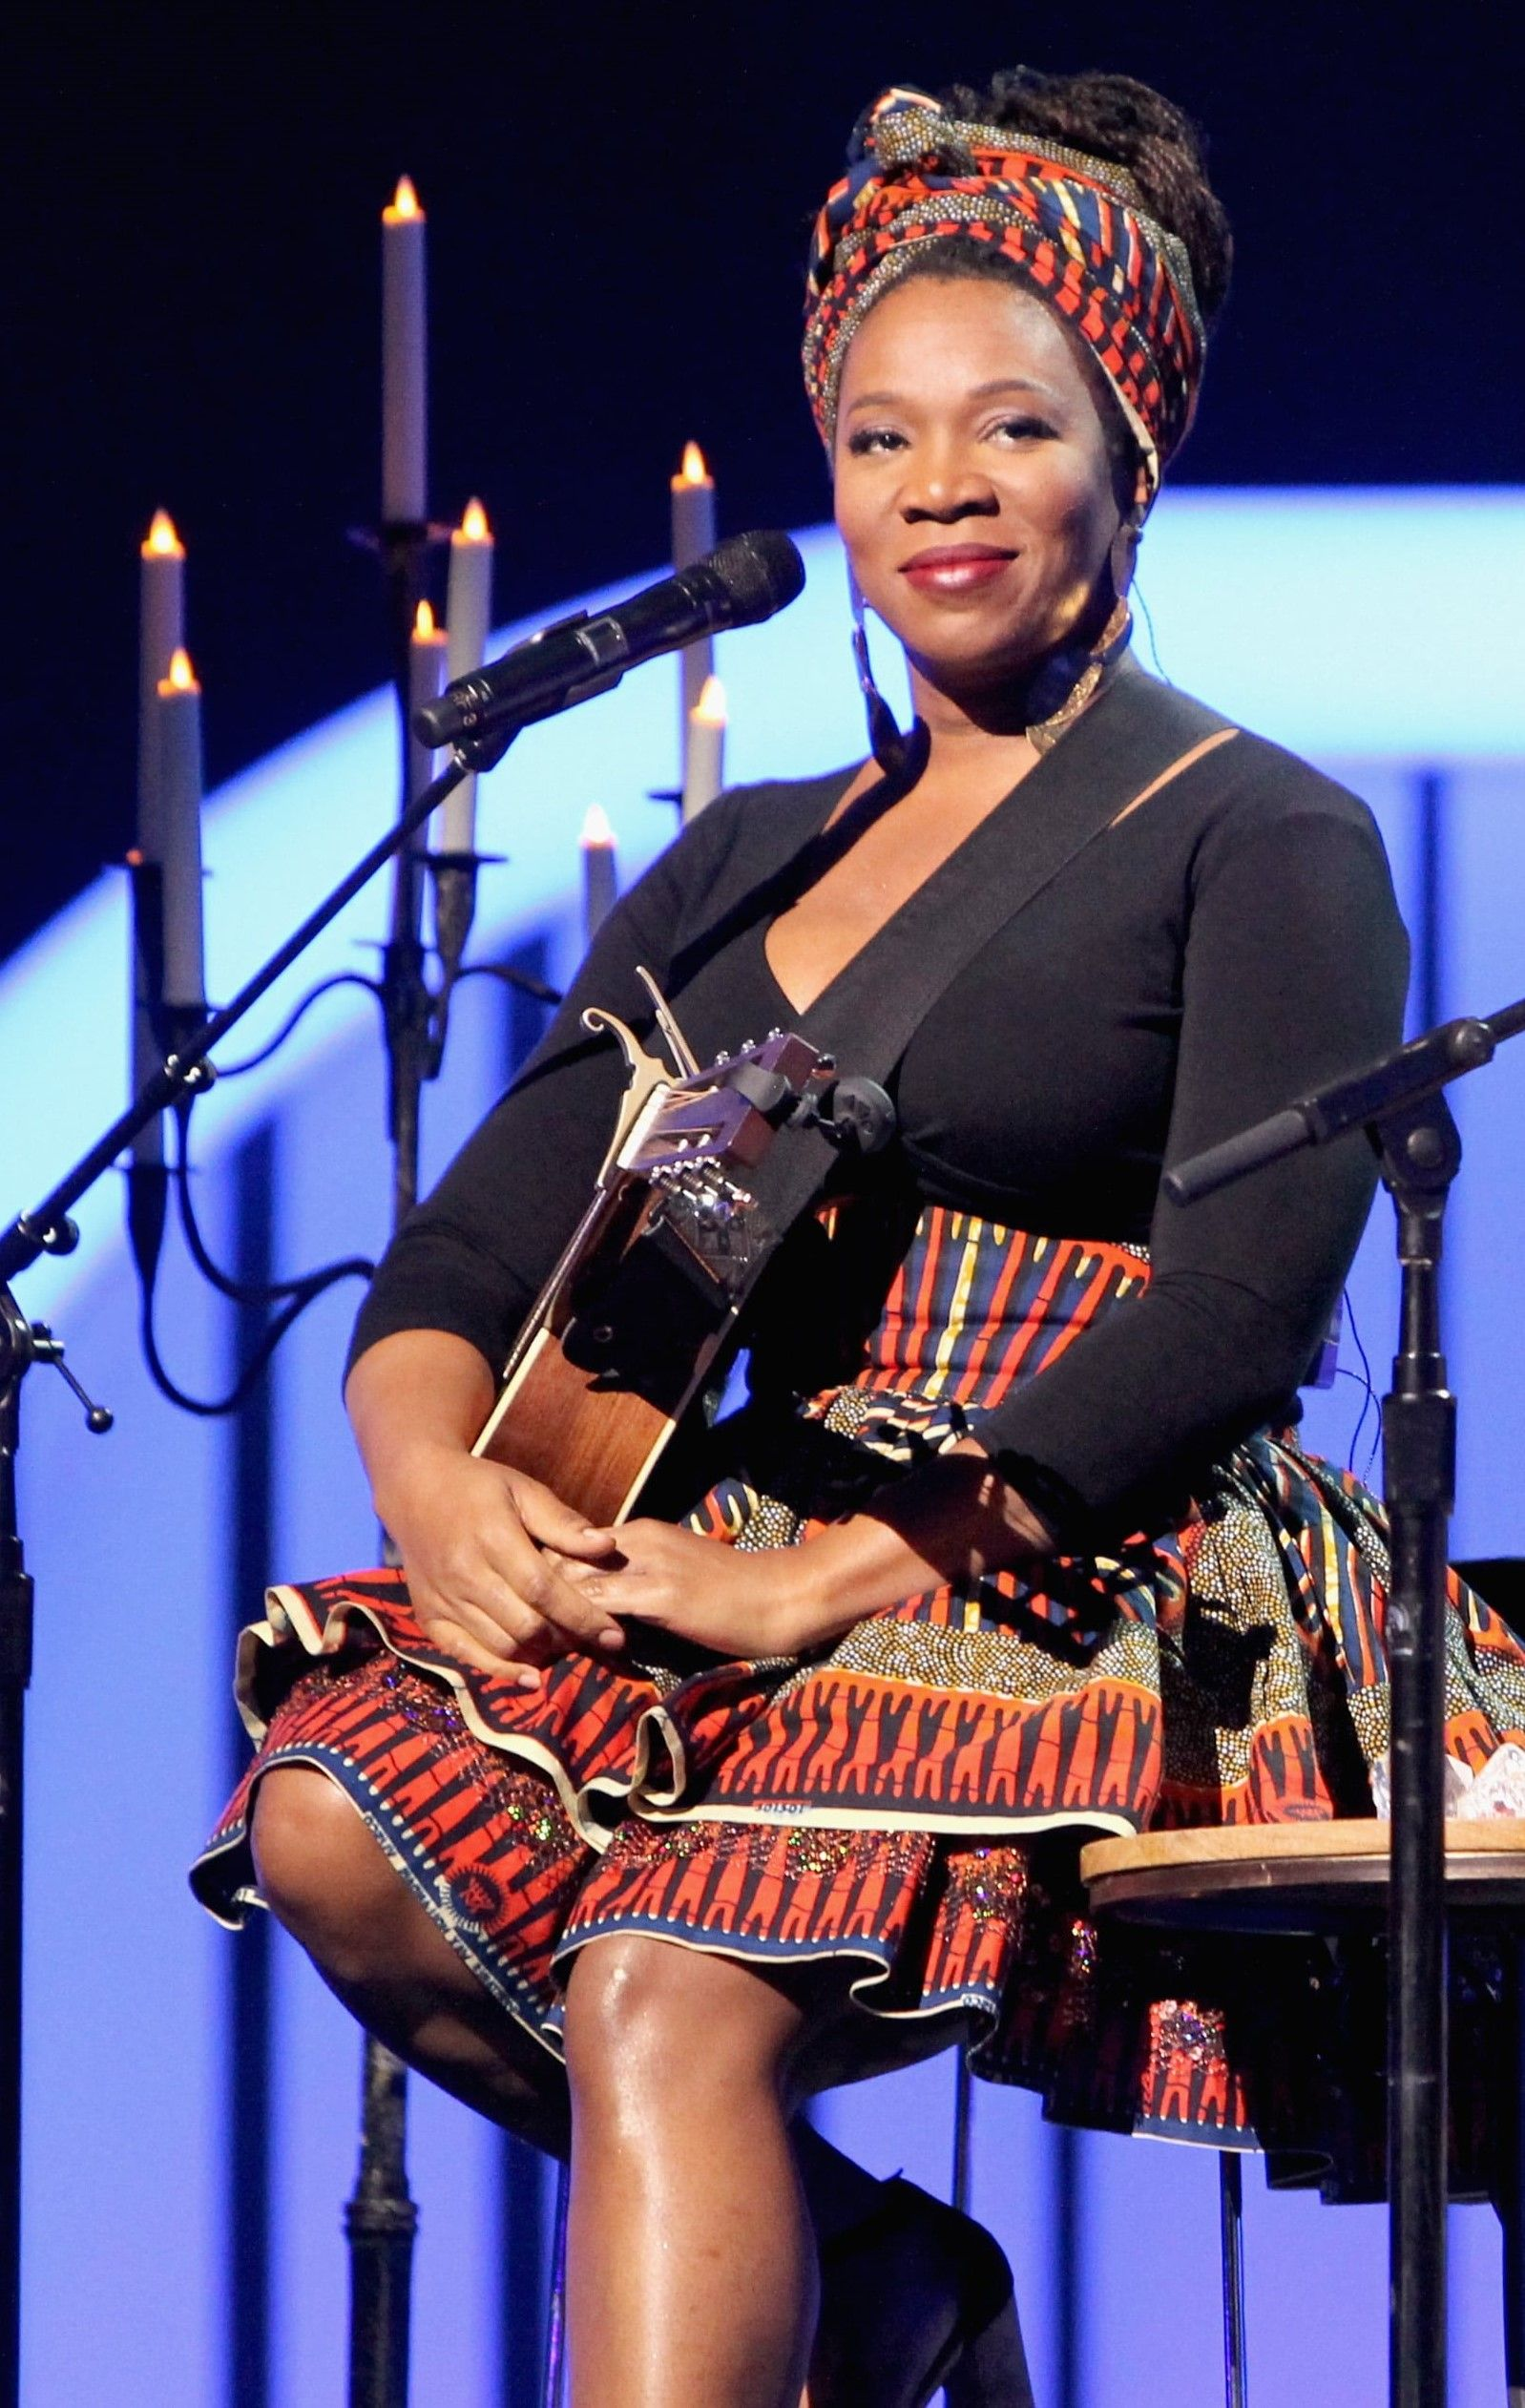 Soul Train Awards 2016: All Things Hair - IMAGE - India Arie